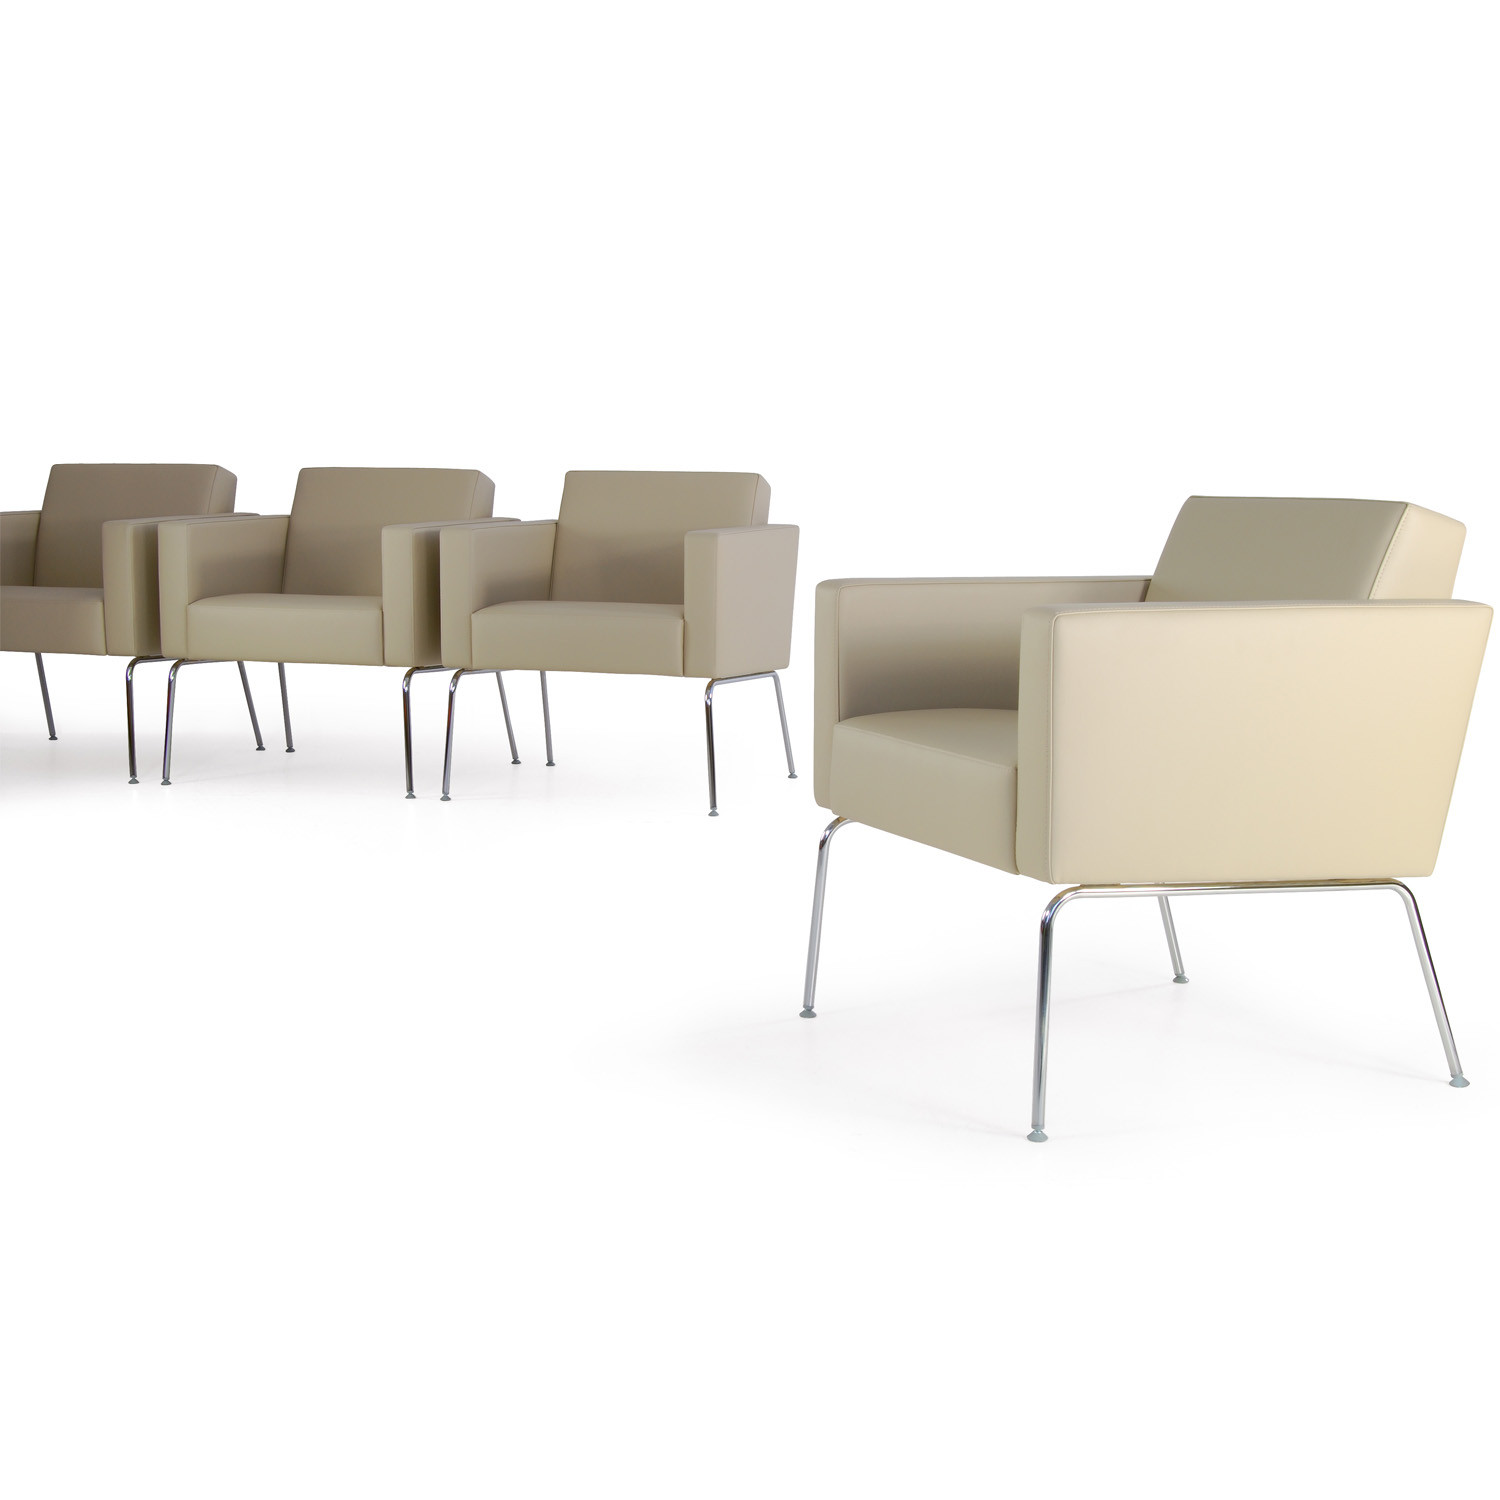 HM66 Four-Legged Upholstered Armchairs